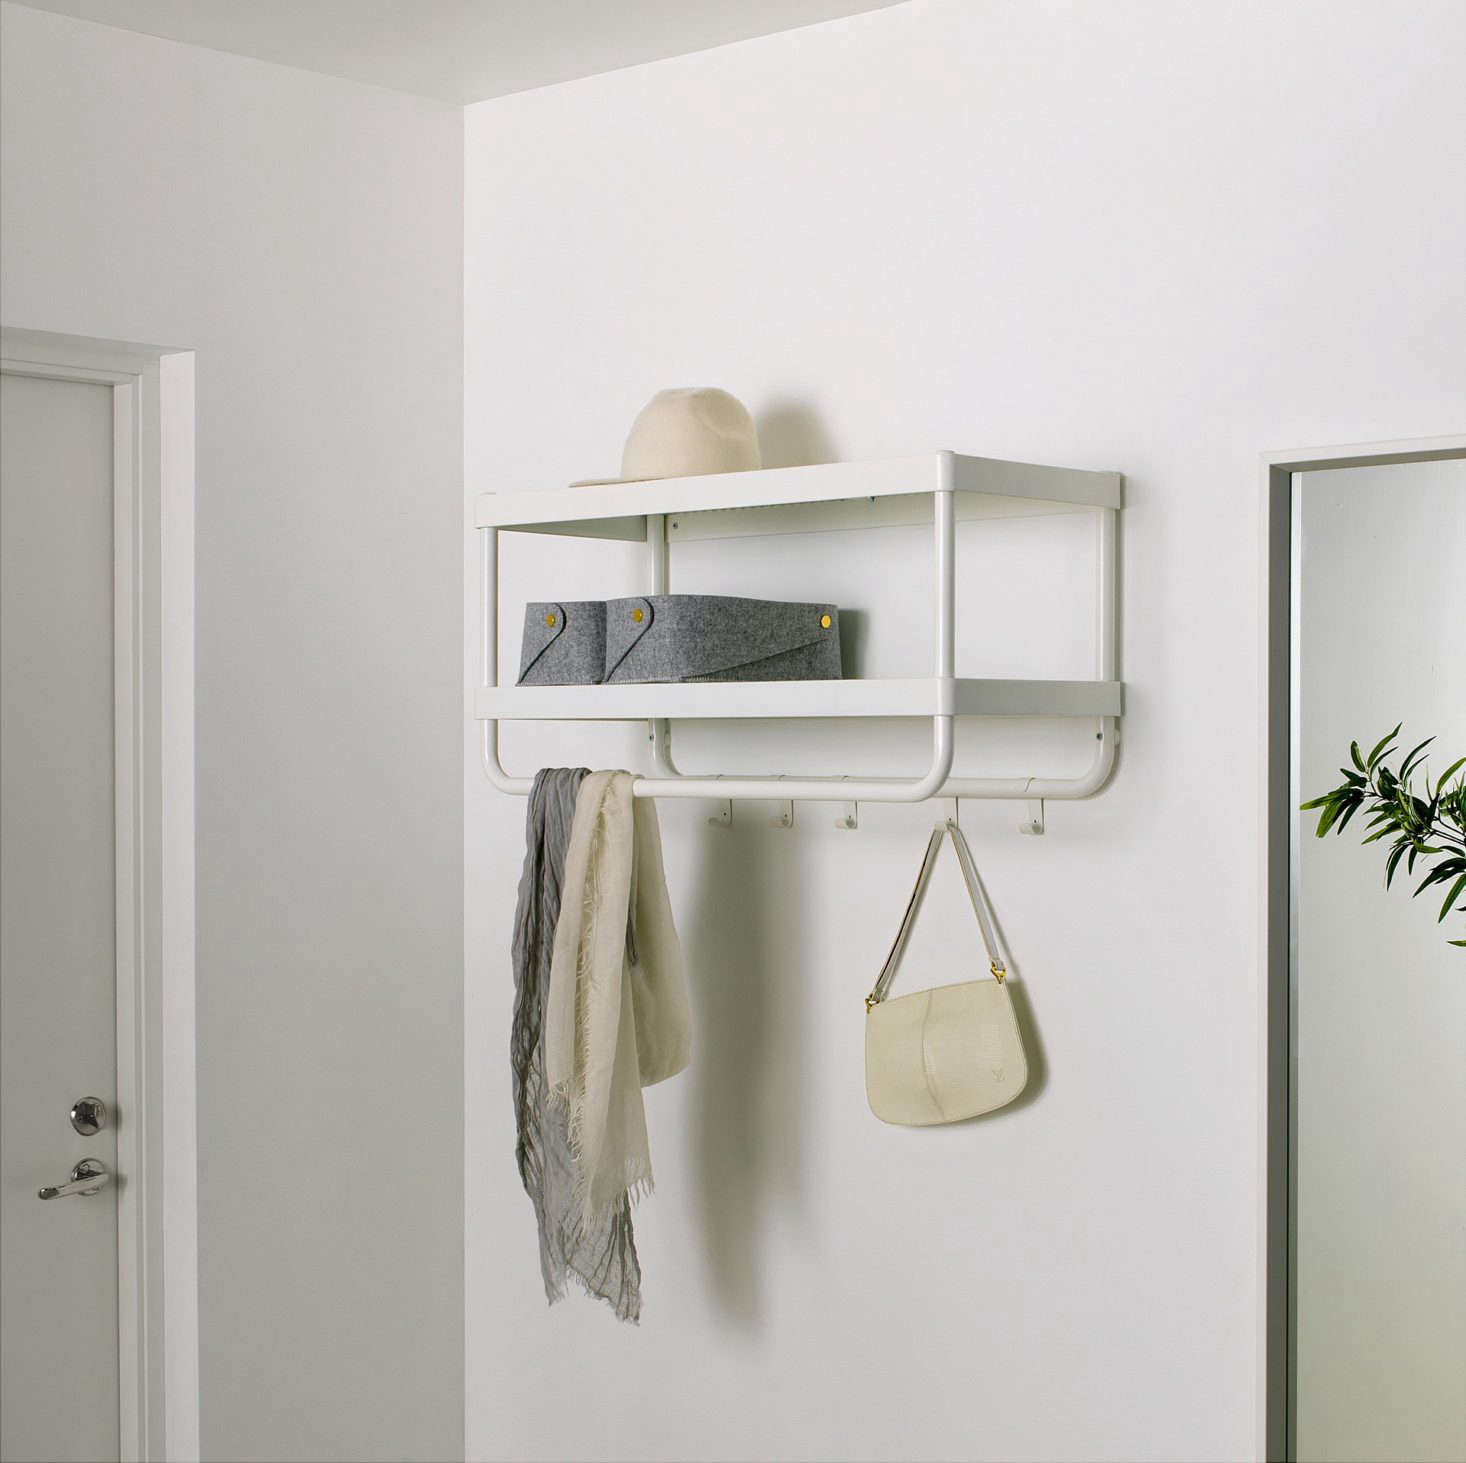 The Mackapär Hat And Coat Rack Is An Abridged Version Of The Larger Coat  Rack With